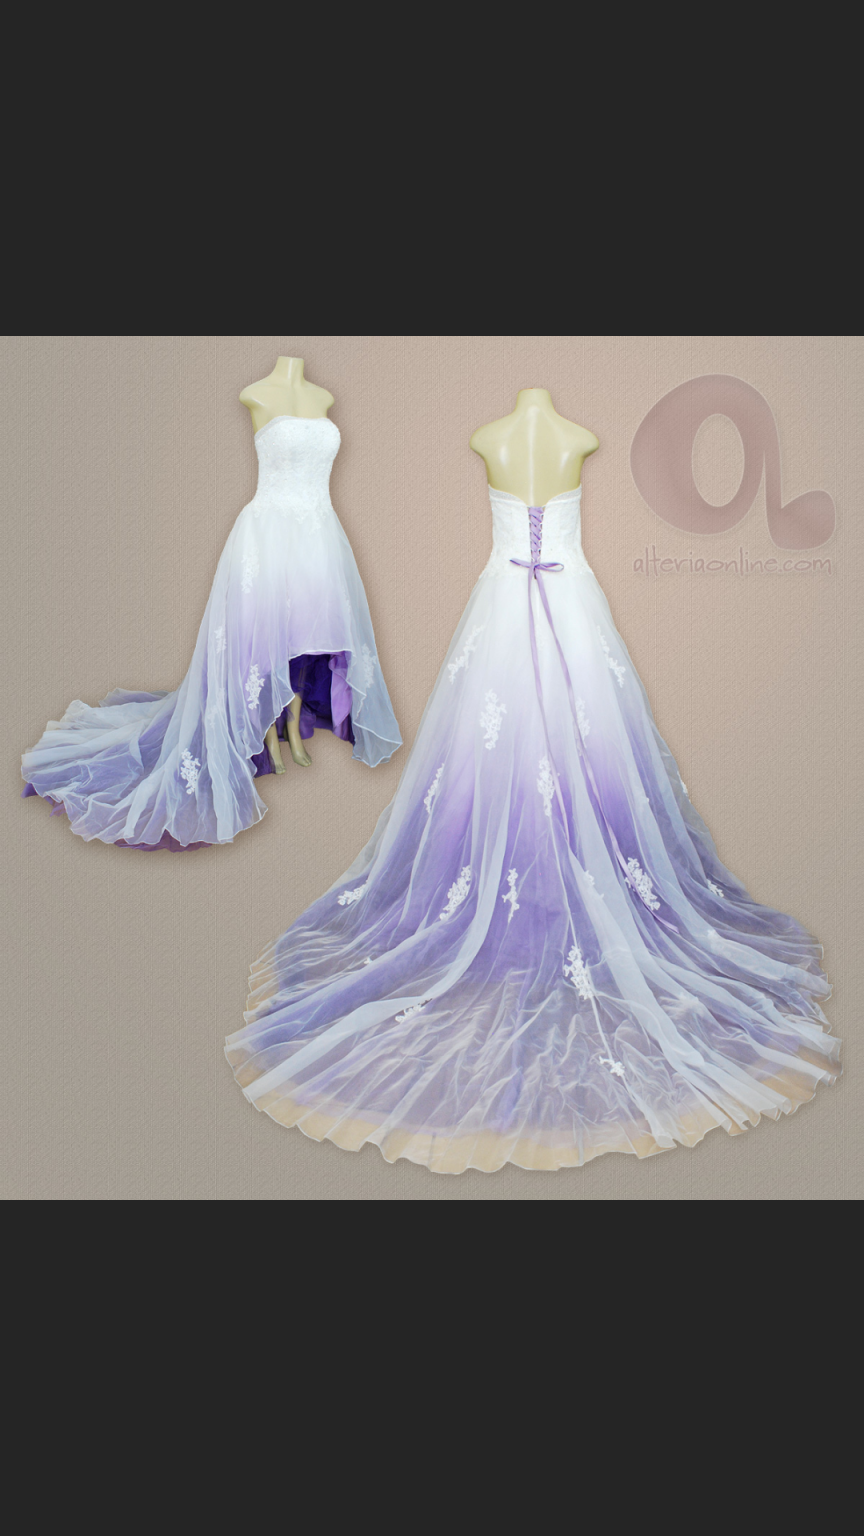 Camille La Vie Altered Into A High Low Wedding Dress Used Size 14 800 Purple Wedding Dress Dip Dye Wedding Dress Wedding Dresses High Low [ 1536 x 864 Pixel ]